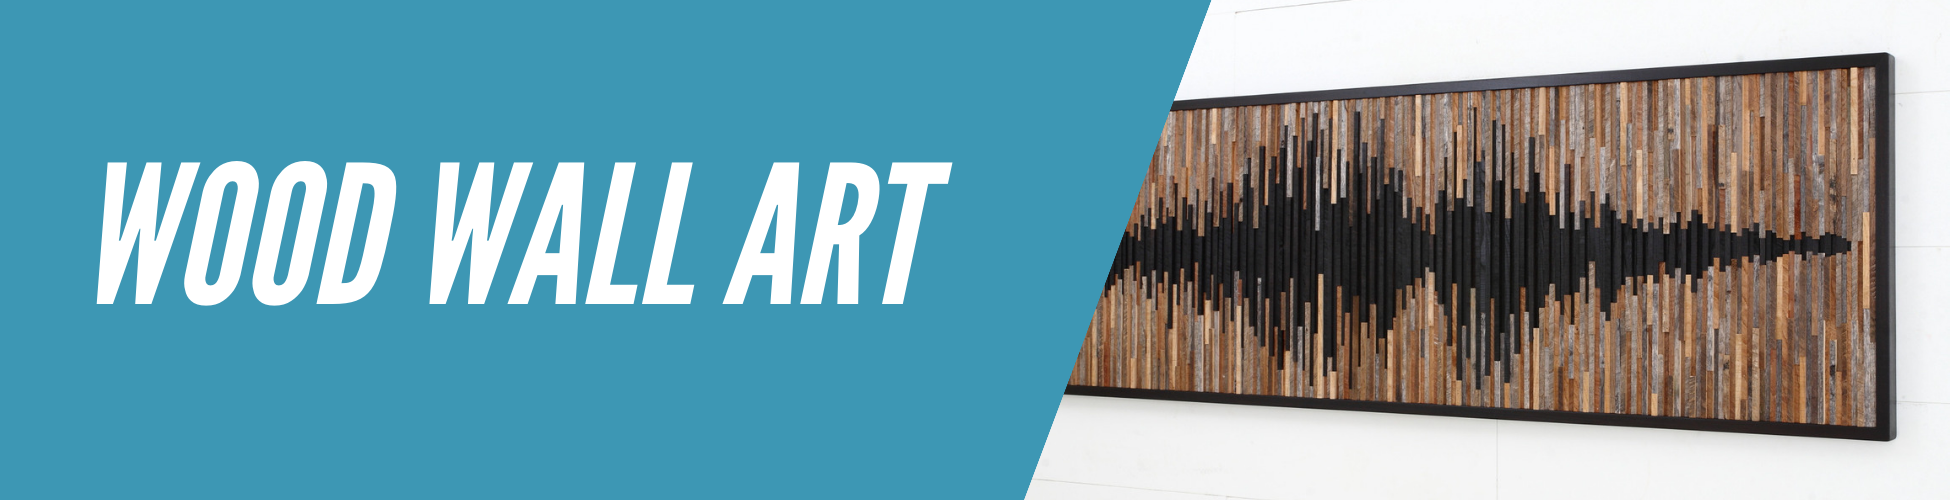 wood-wall-art-banner-v3.png